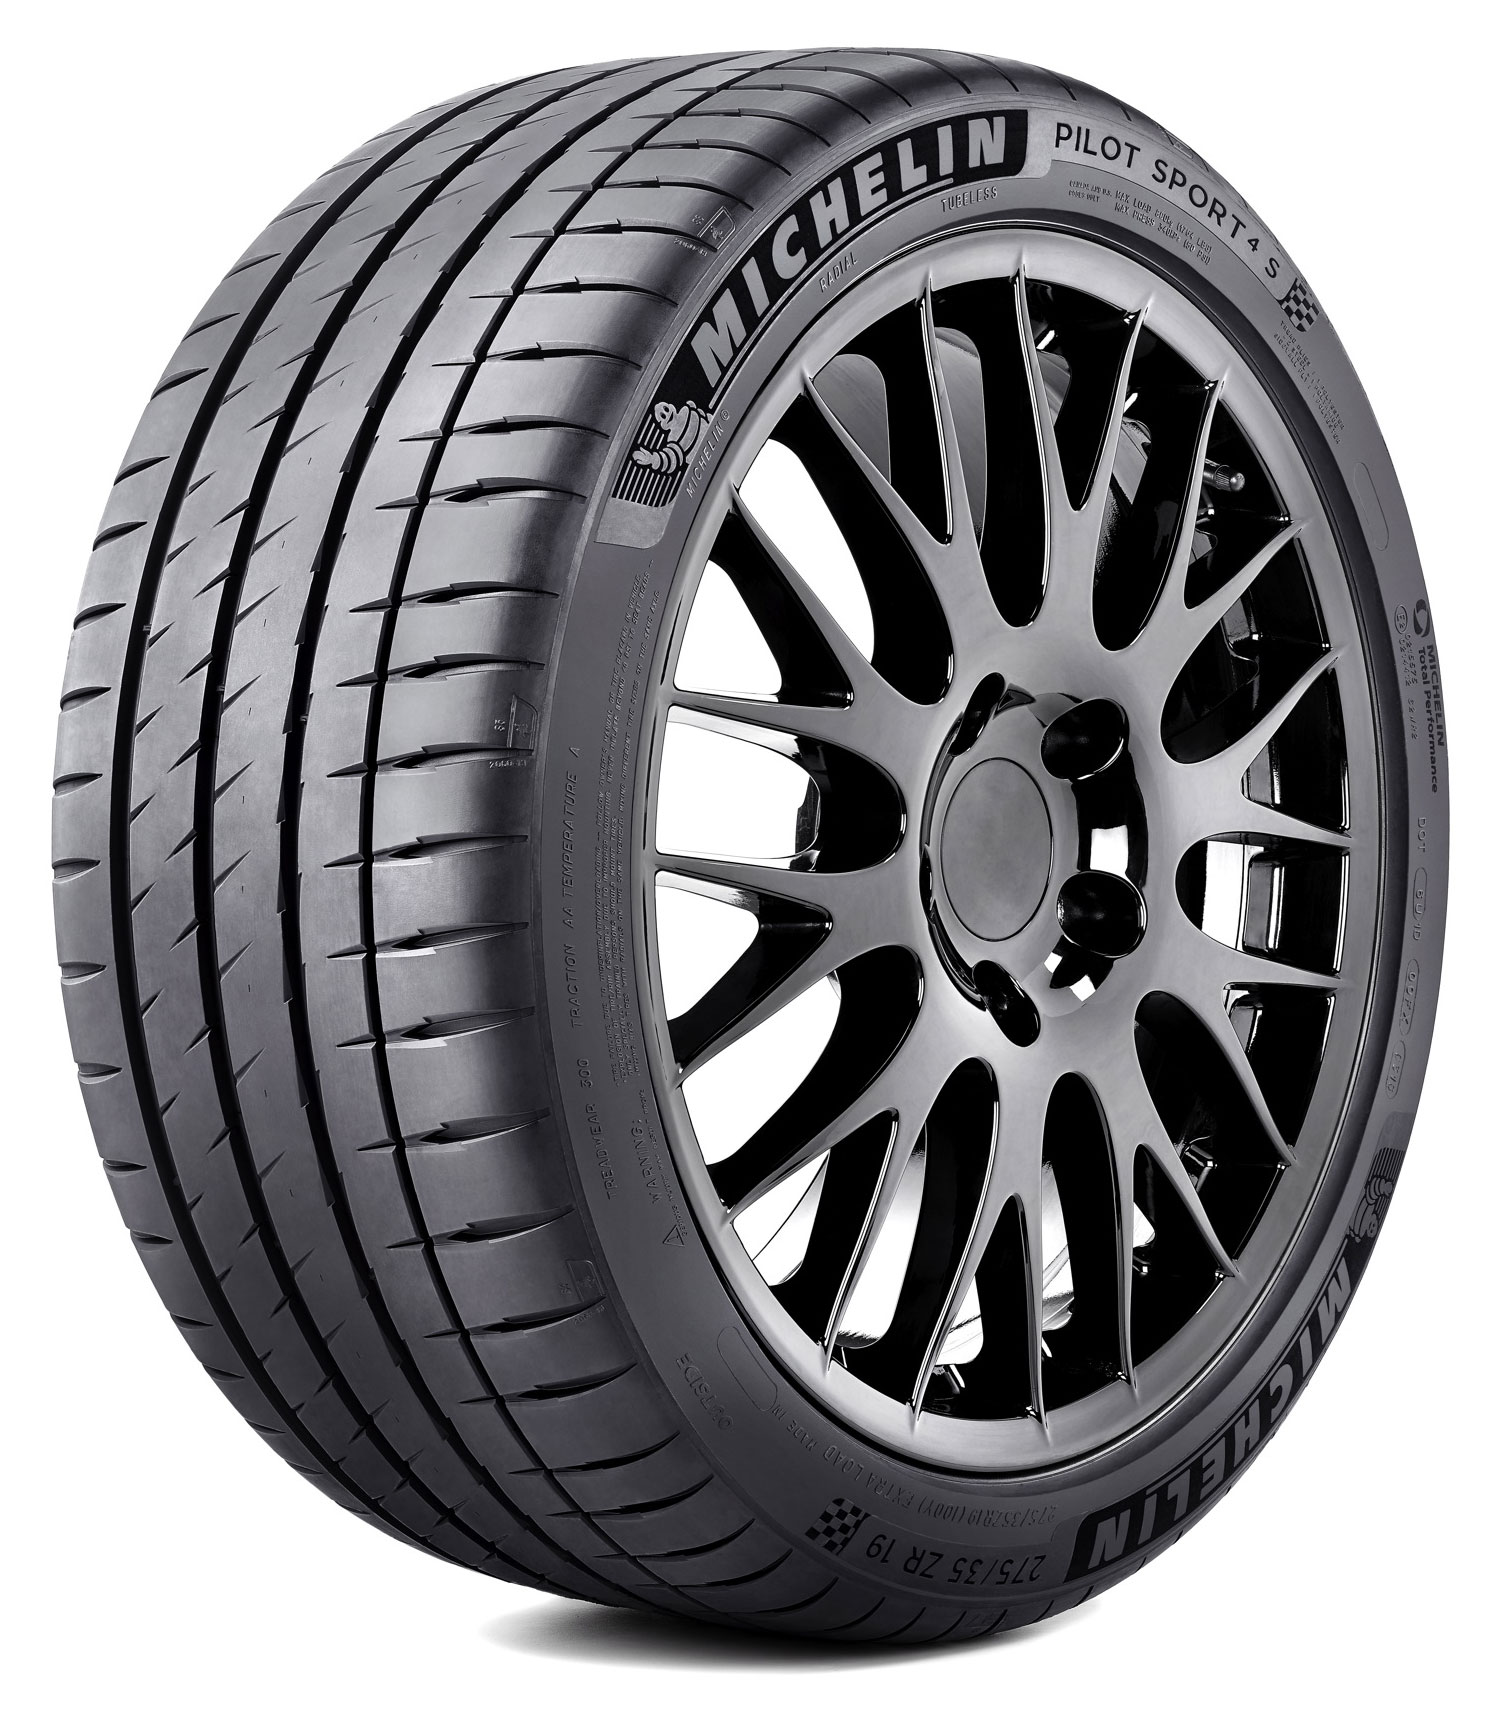 Llantas 275/35 R20  PILOT SPORT 4S MICHELIN Origen china